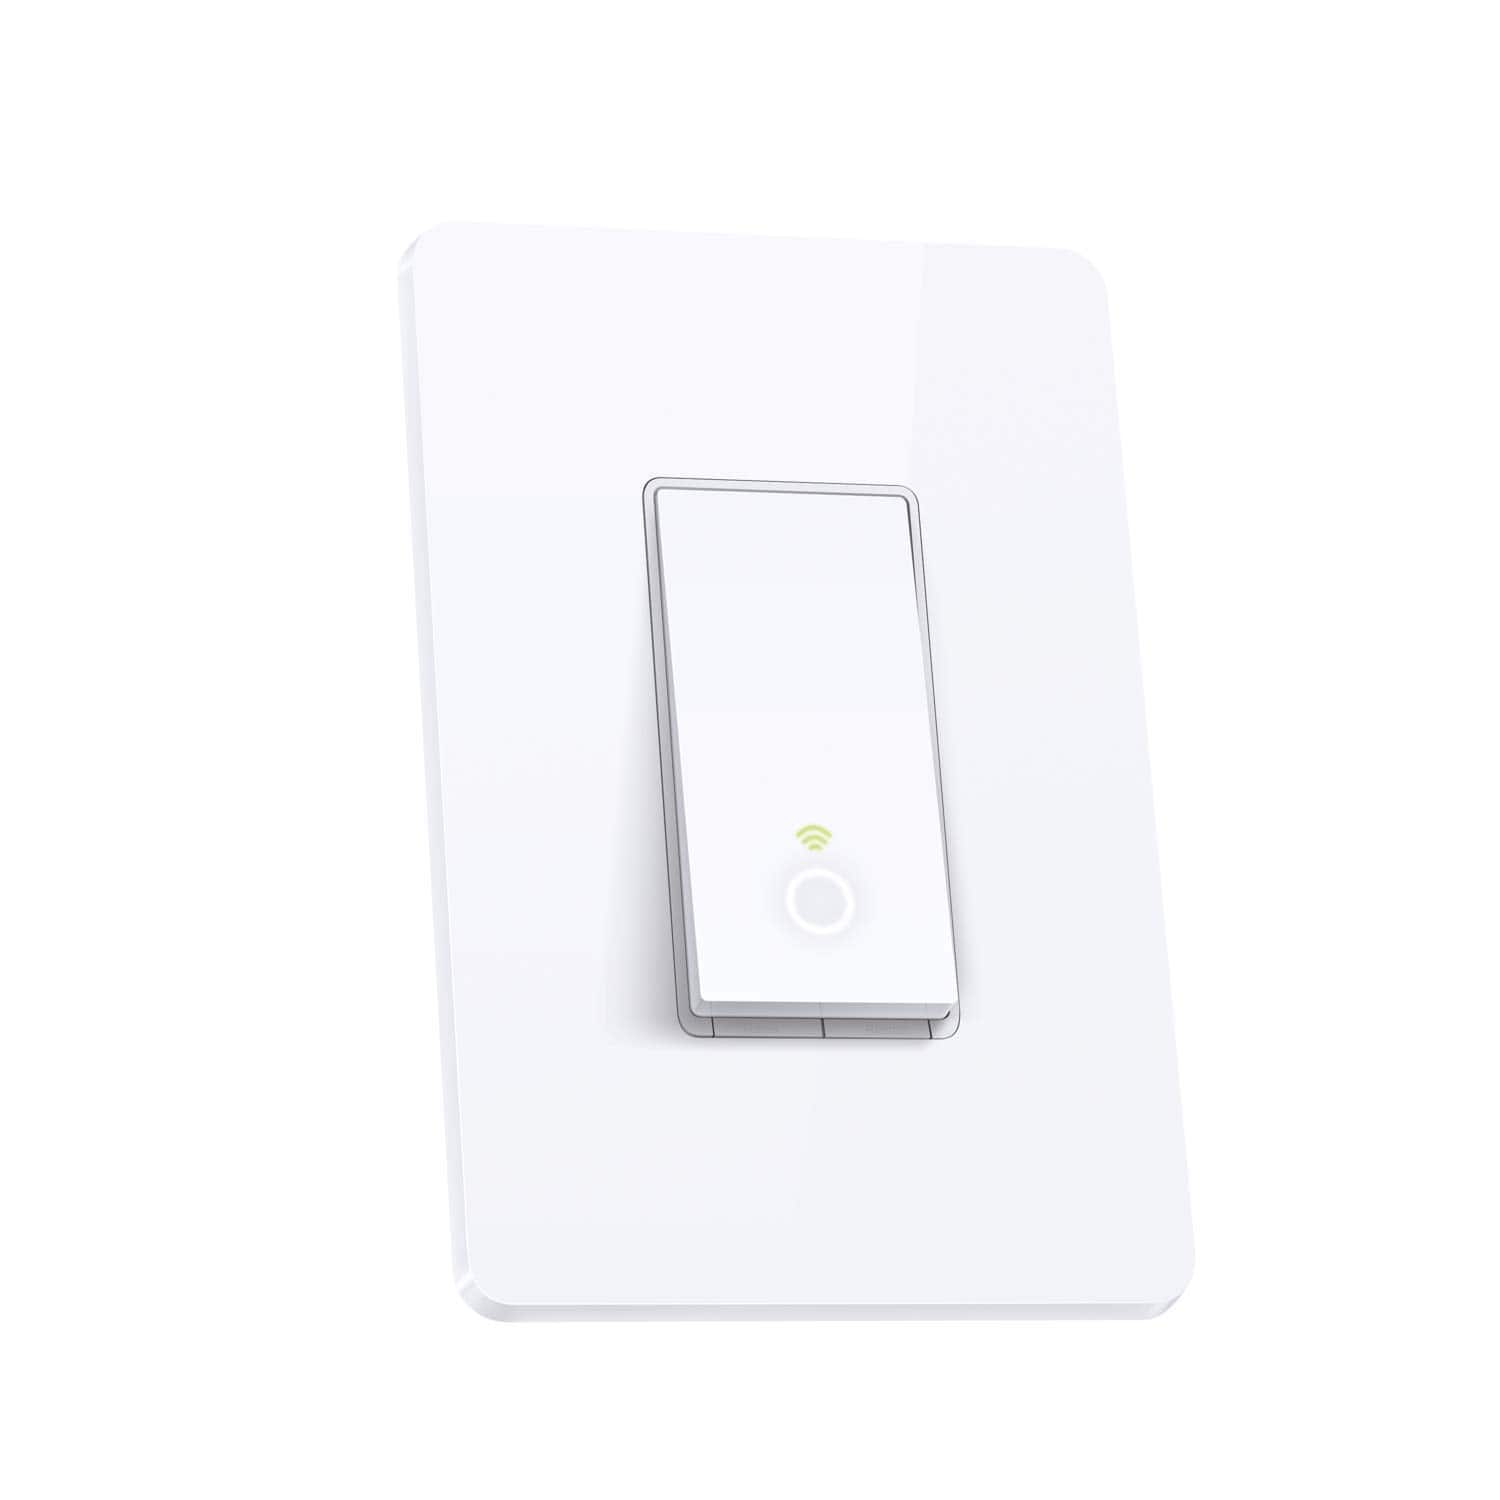 3-Pack TP-Link HS200P3 Kasa Smart Wi-Fi Light Switches @Amazon $45